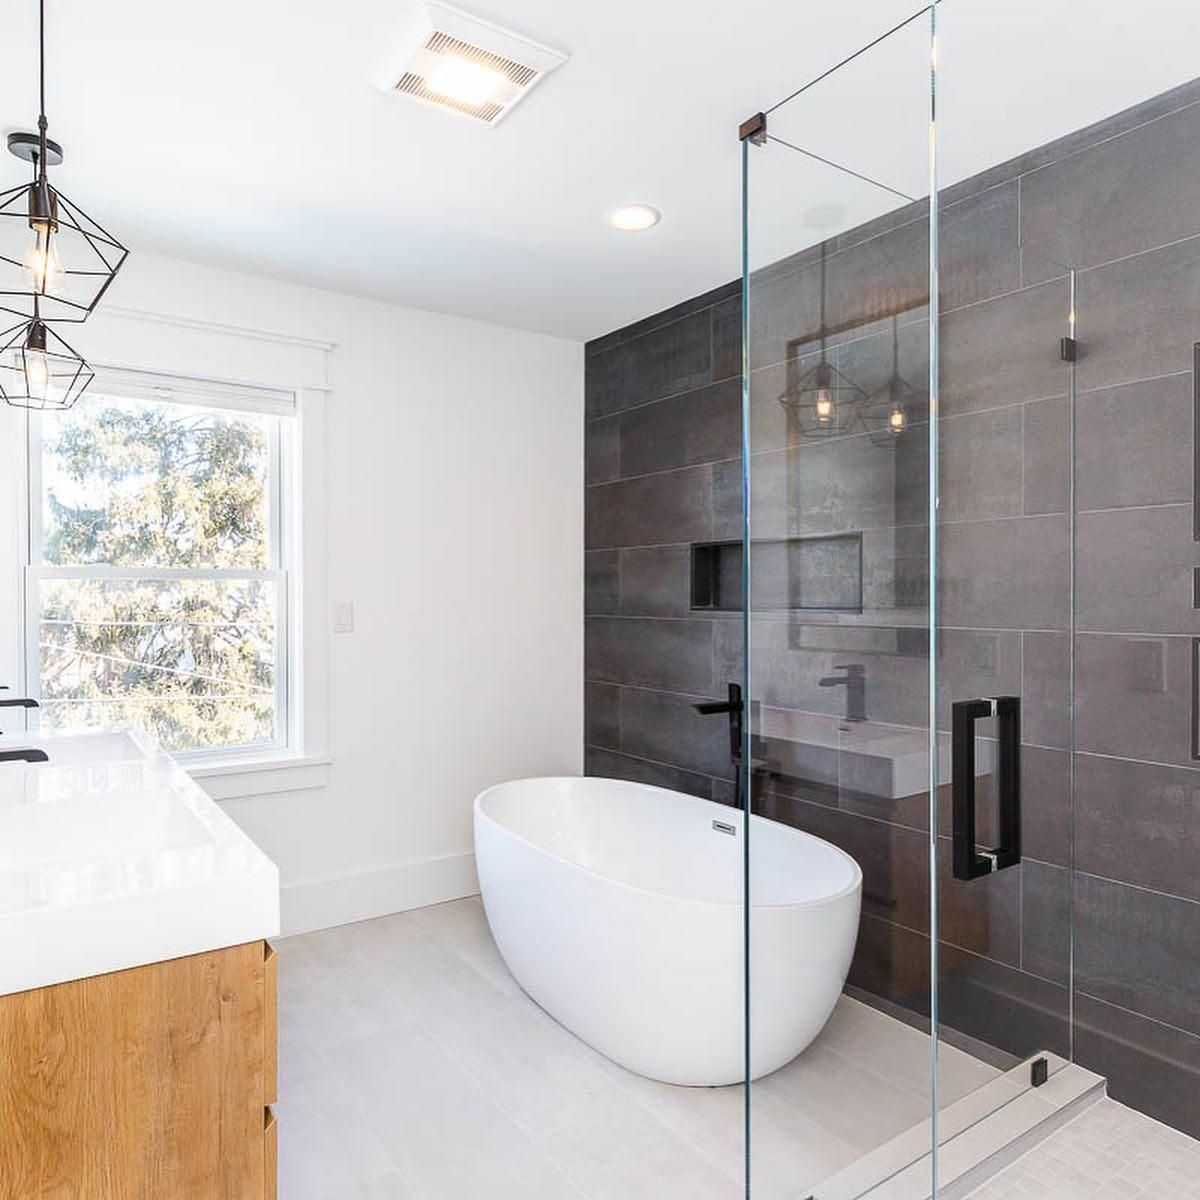 Tried And True Wall And Floor Tile Combinations The Tile Shop Blog Bathroom Wall Tile Bathroom Tile Designs The Tile Shop